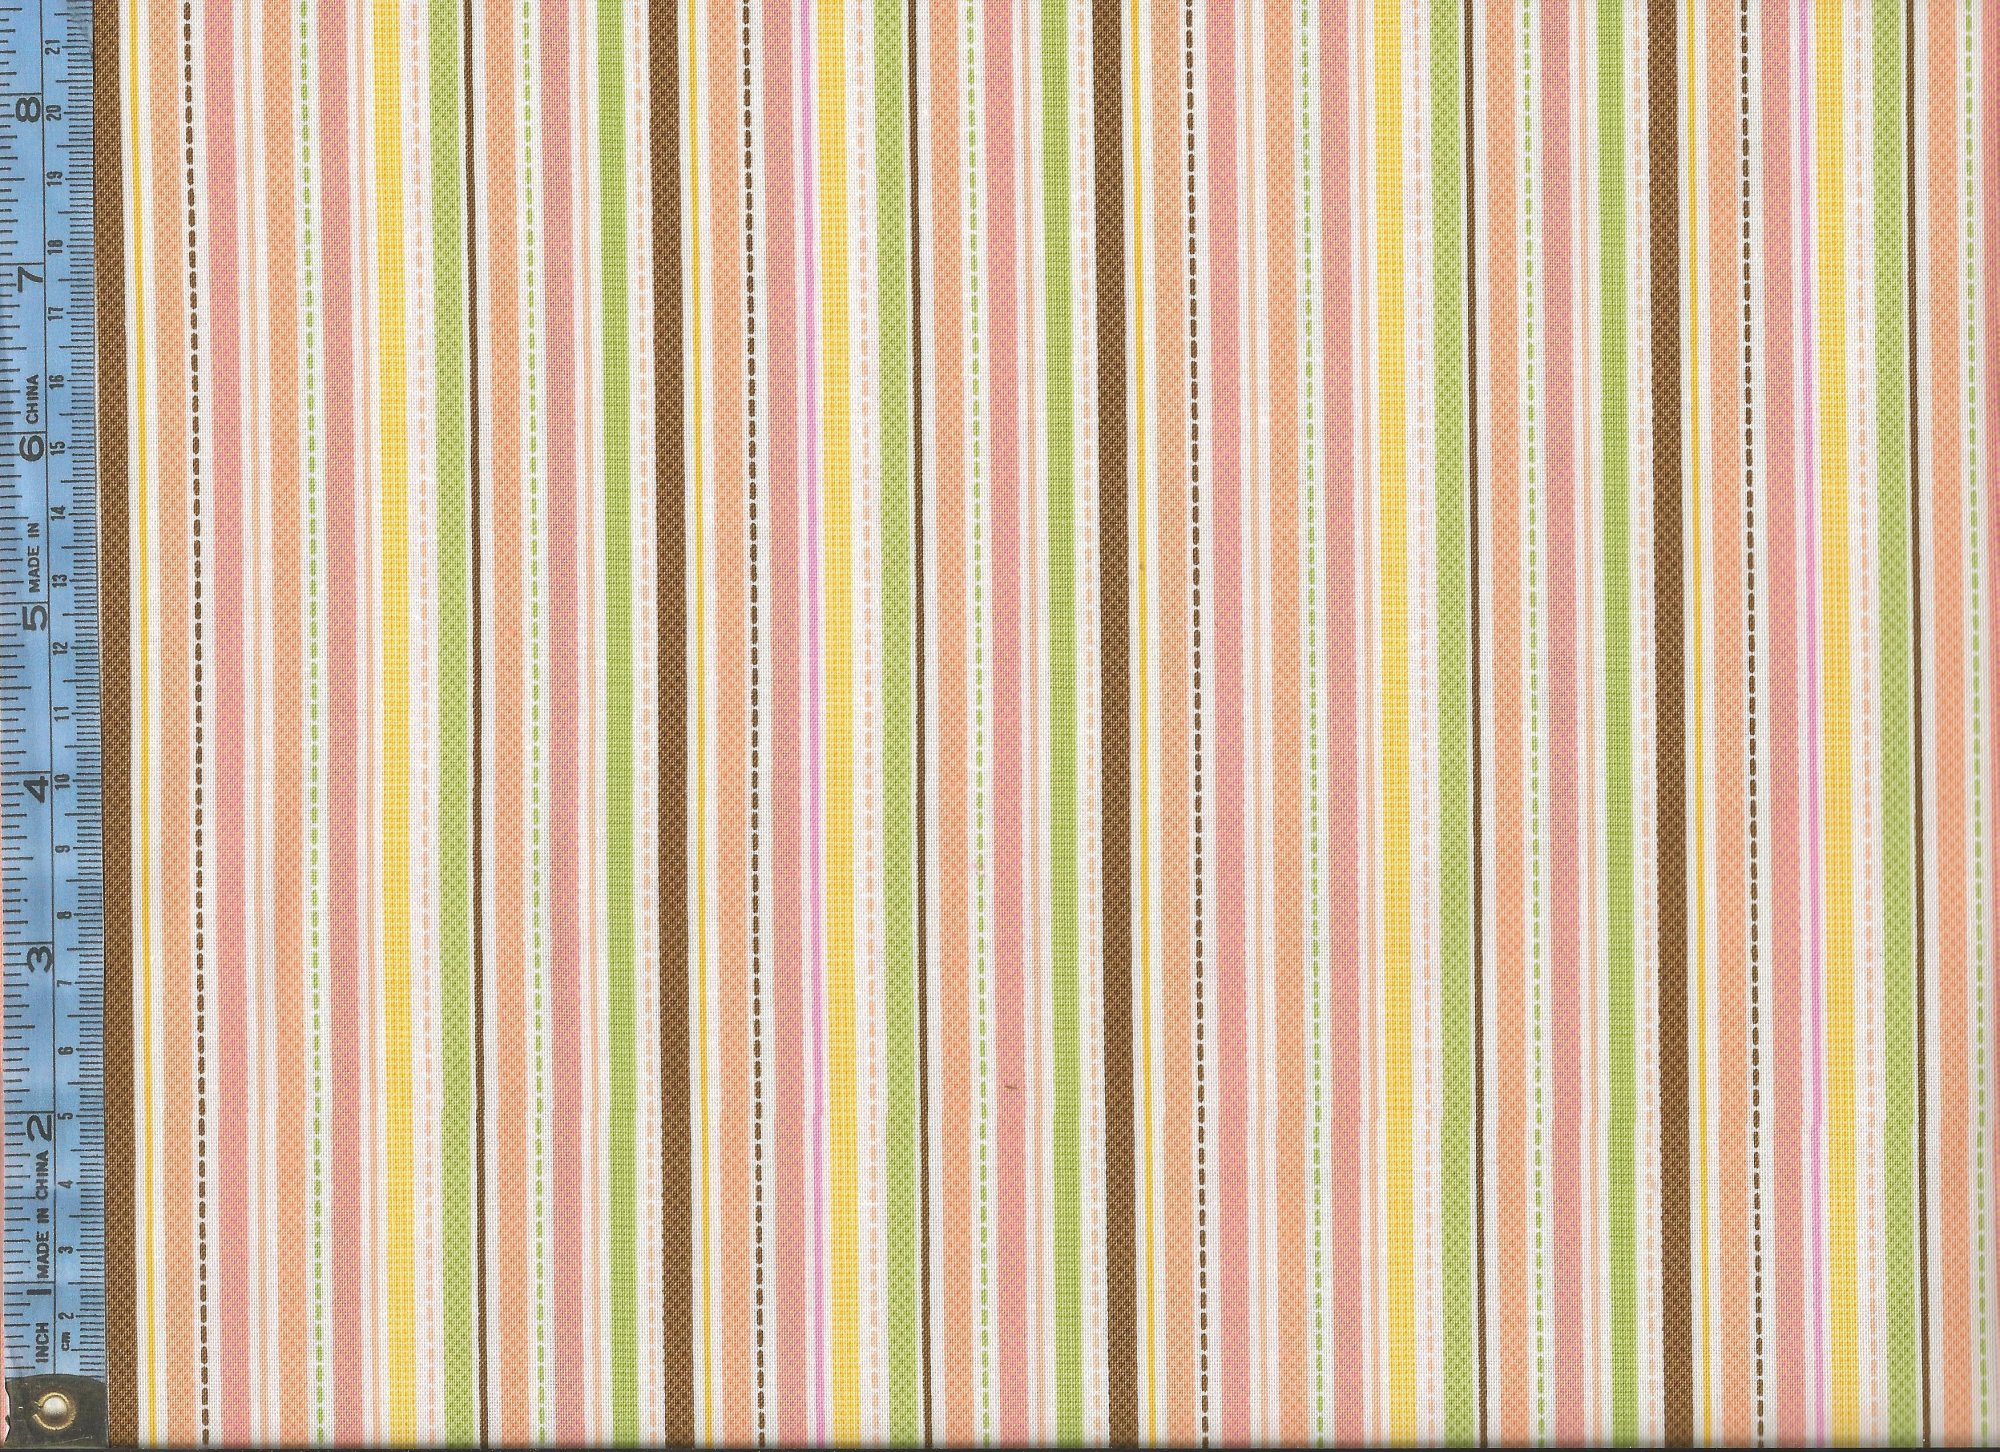 Online Embroidery Fabric Wiring Diagrams Play Rockpaperscissorsspocklizard 5gesture Roshambo Sweet Baby Girl Green Orange Brown And Yellow Stripes Buy India